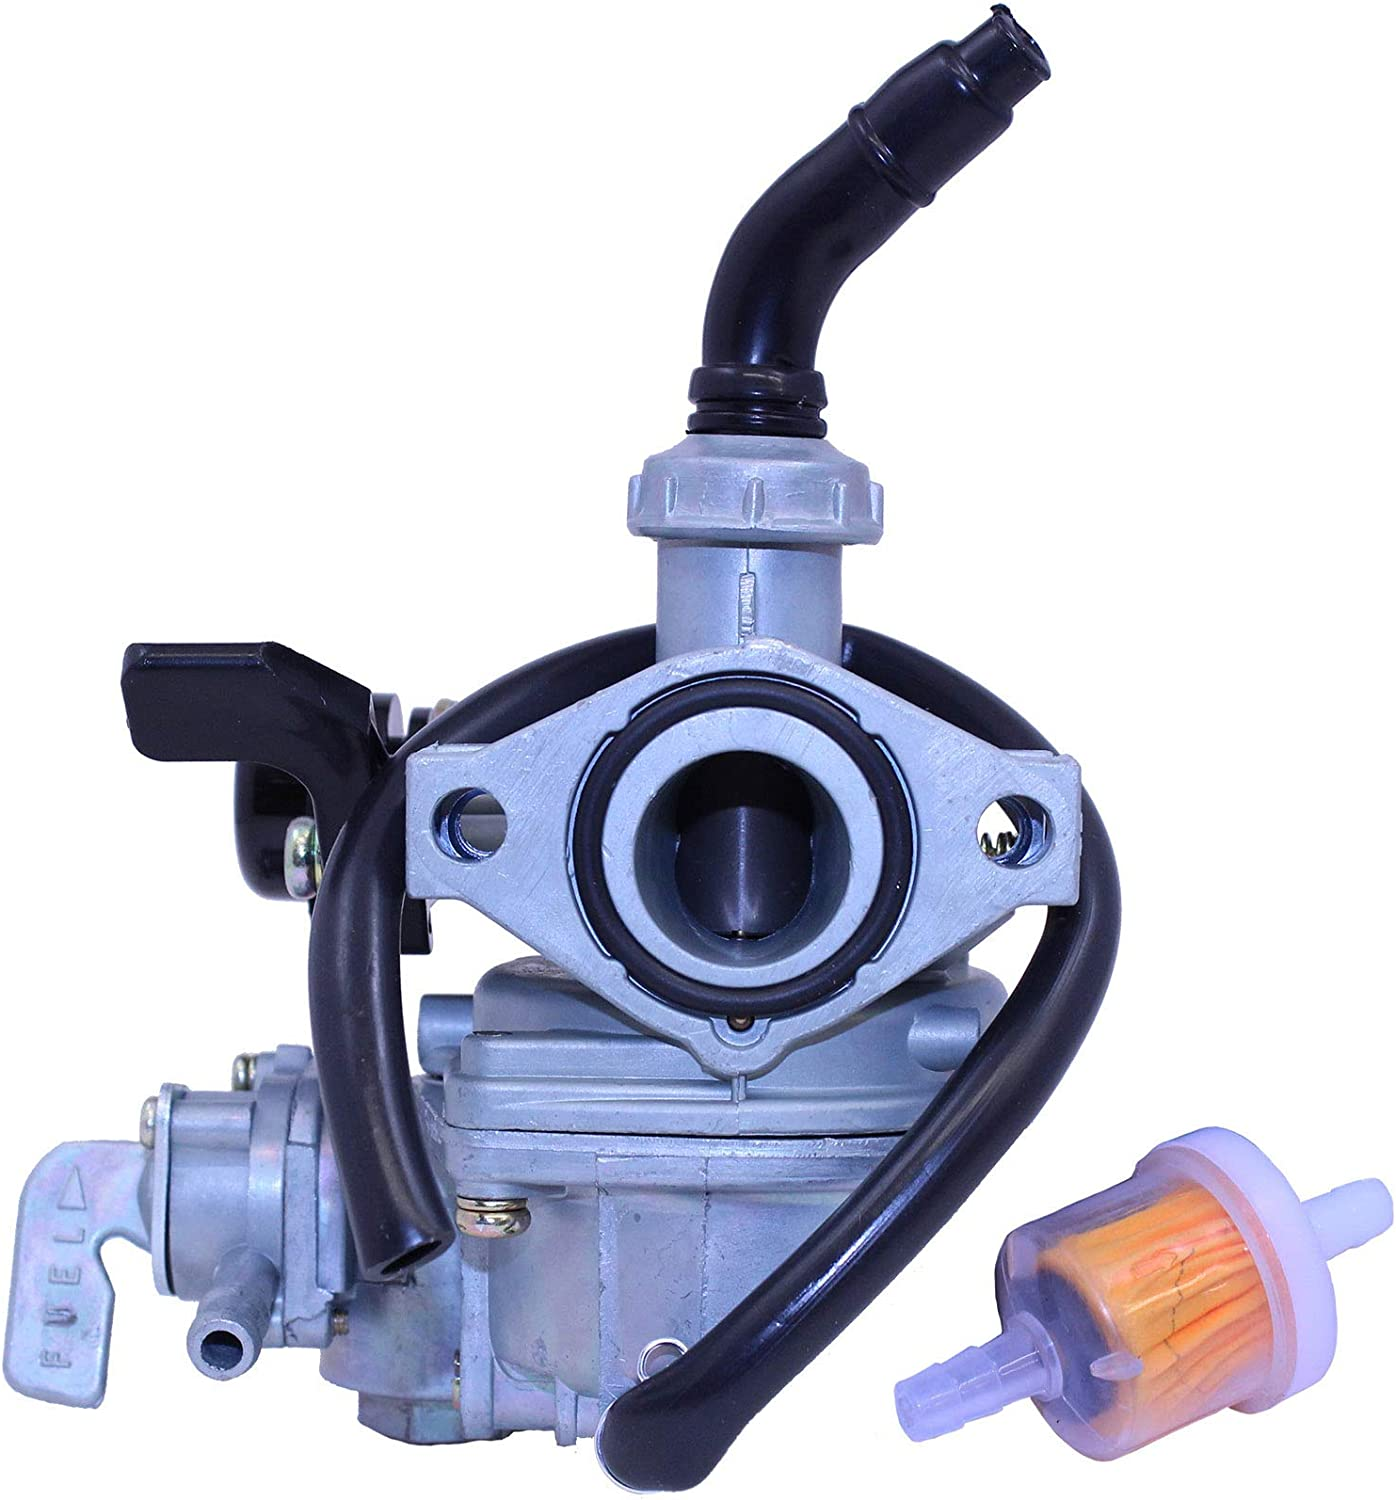 IZTOSS Motorcycle Carburetor For Honda 3 Wheeler ATC 110 1979-1985 80 81 82 83 84 New Carb